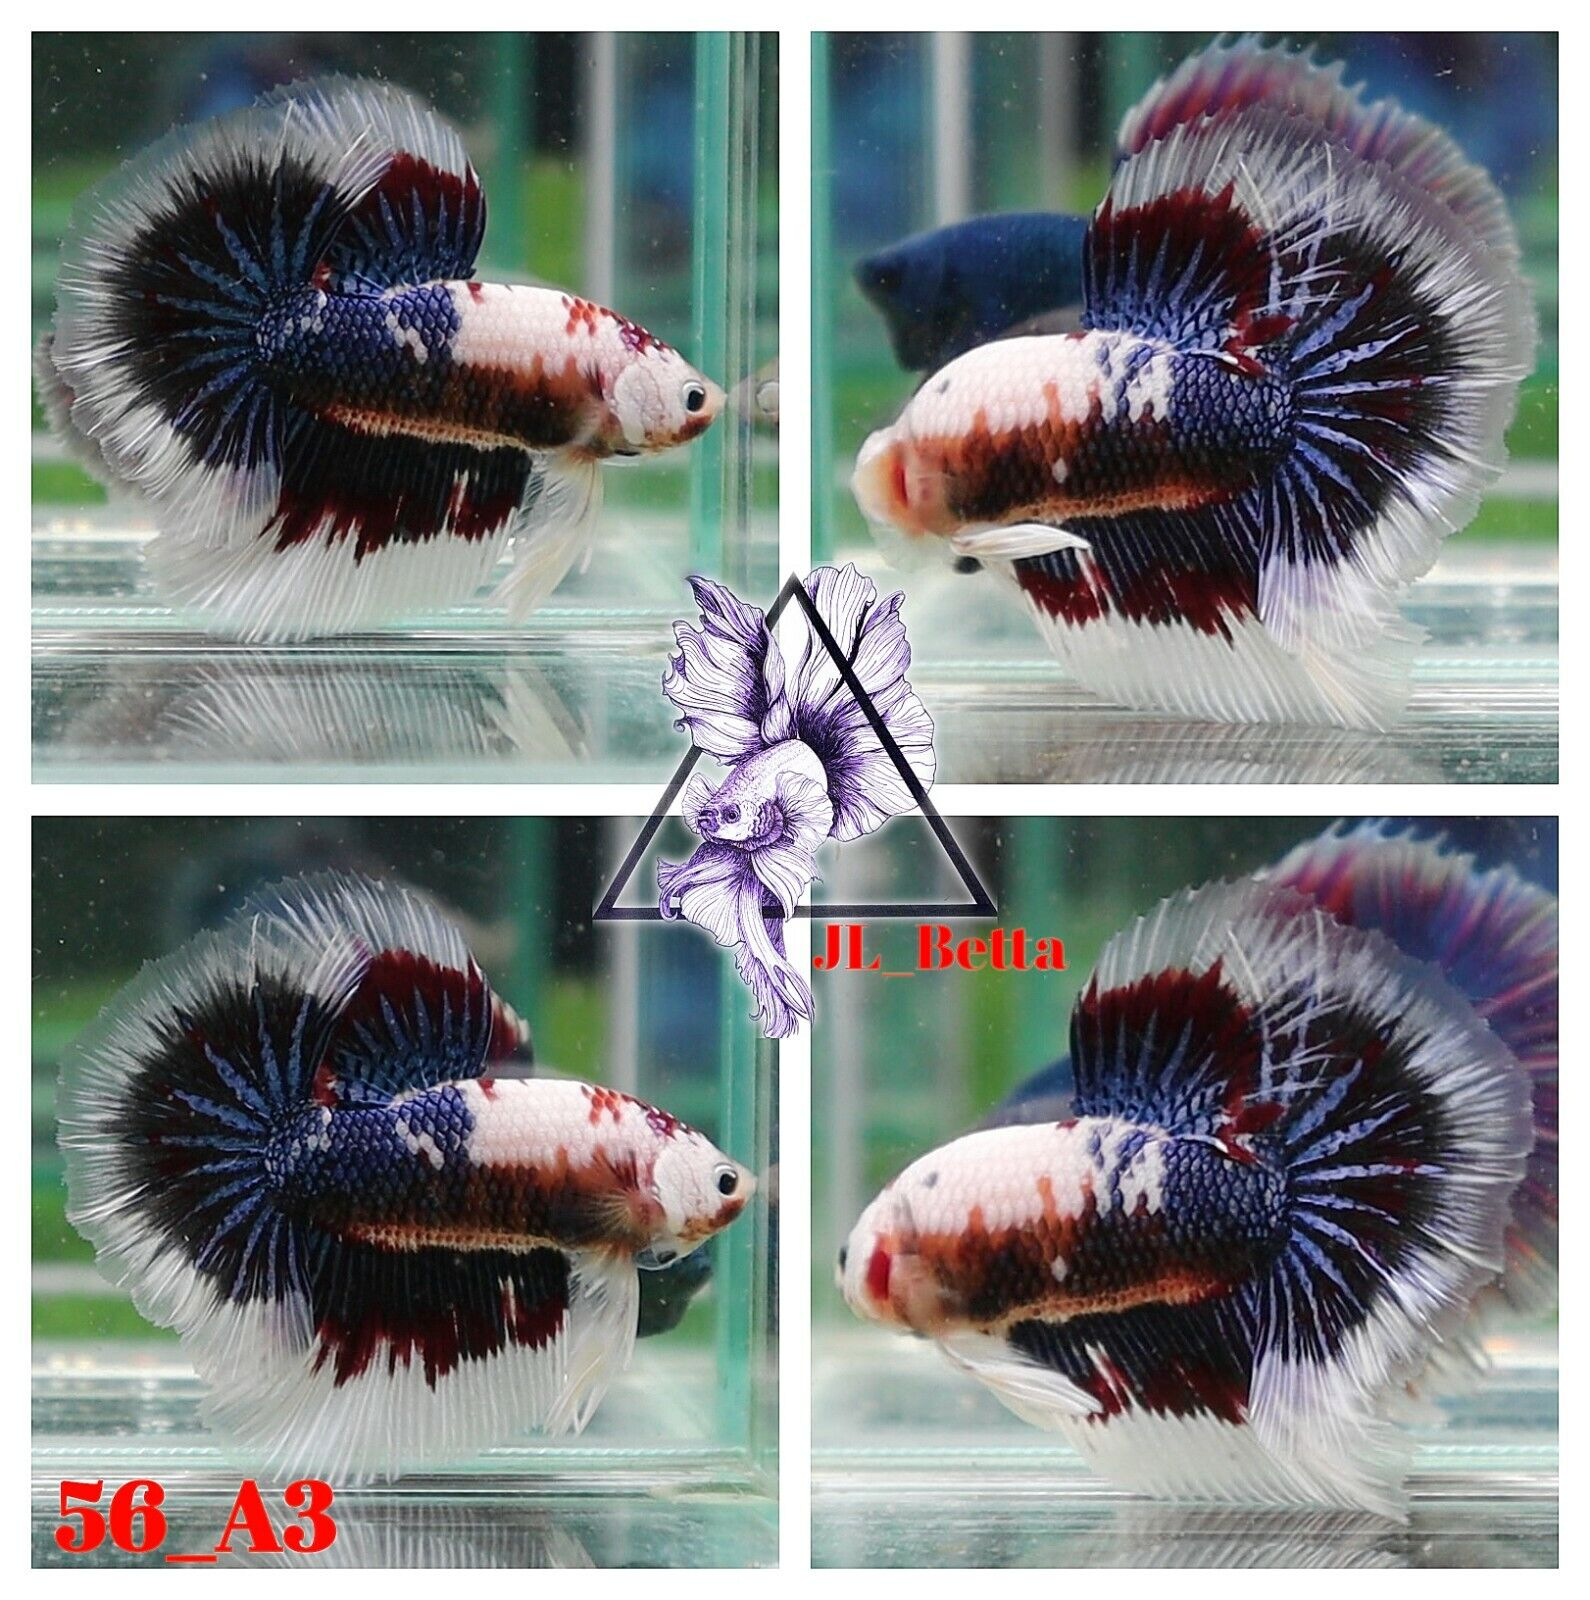 56 A3 Live Betta Fish High Quality Male Fancy Over Halfmoon Video Included  - $29.00